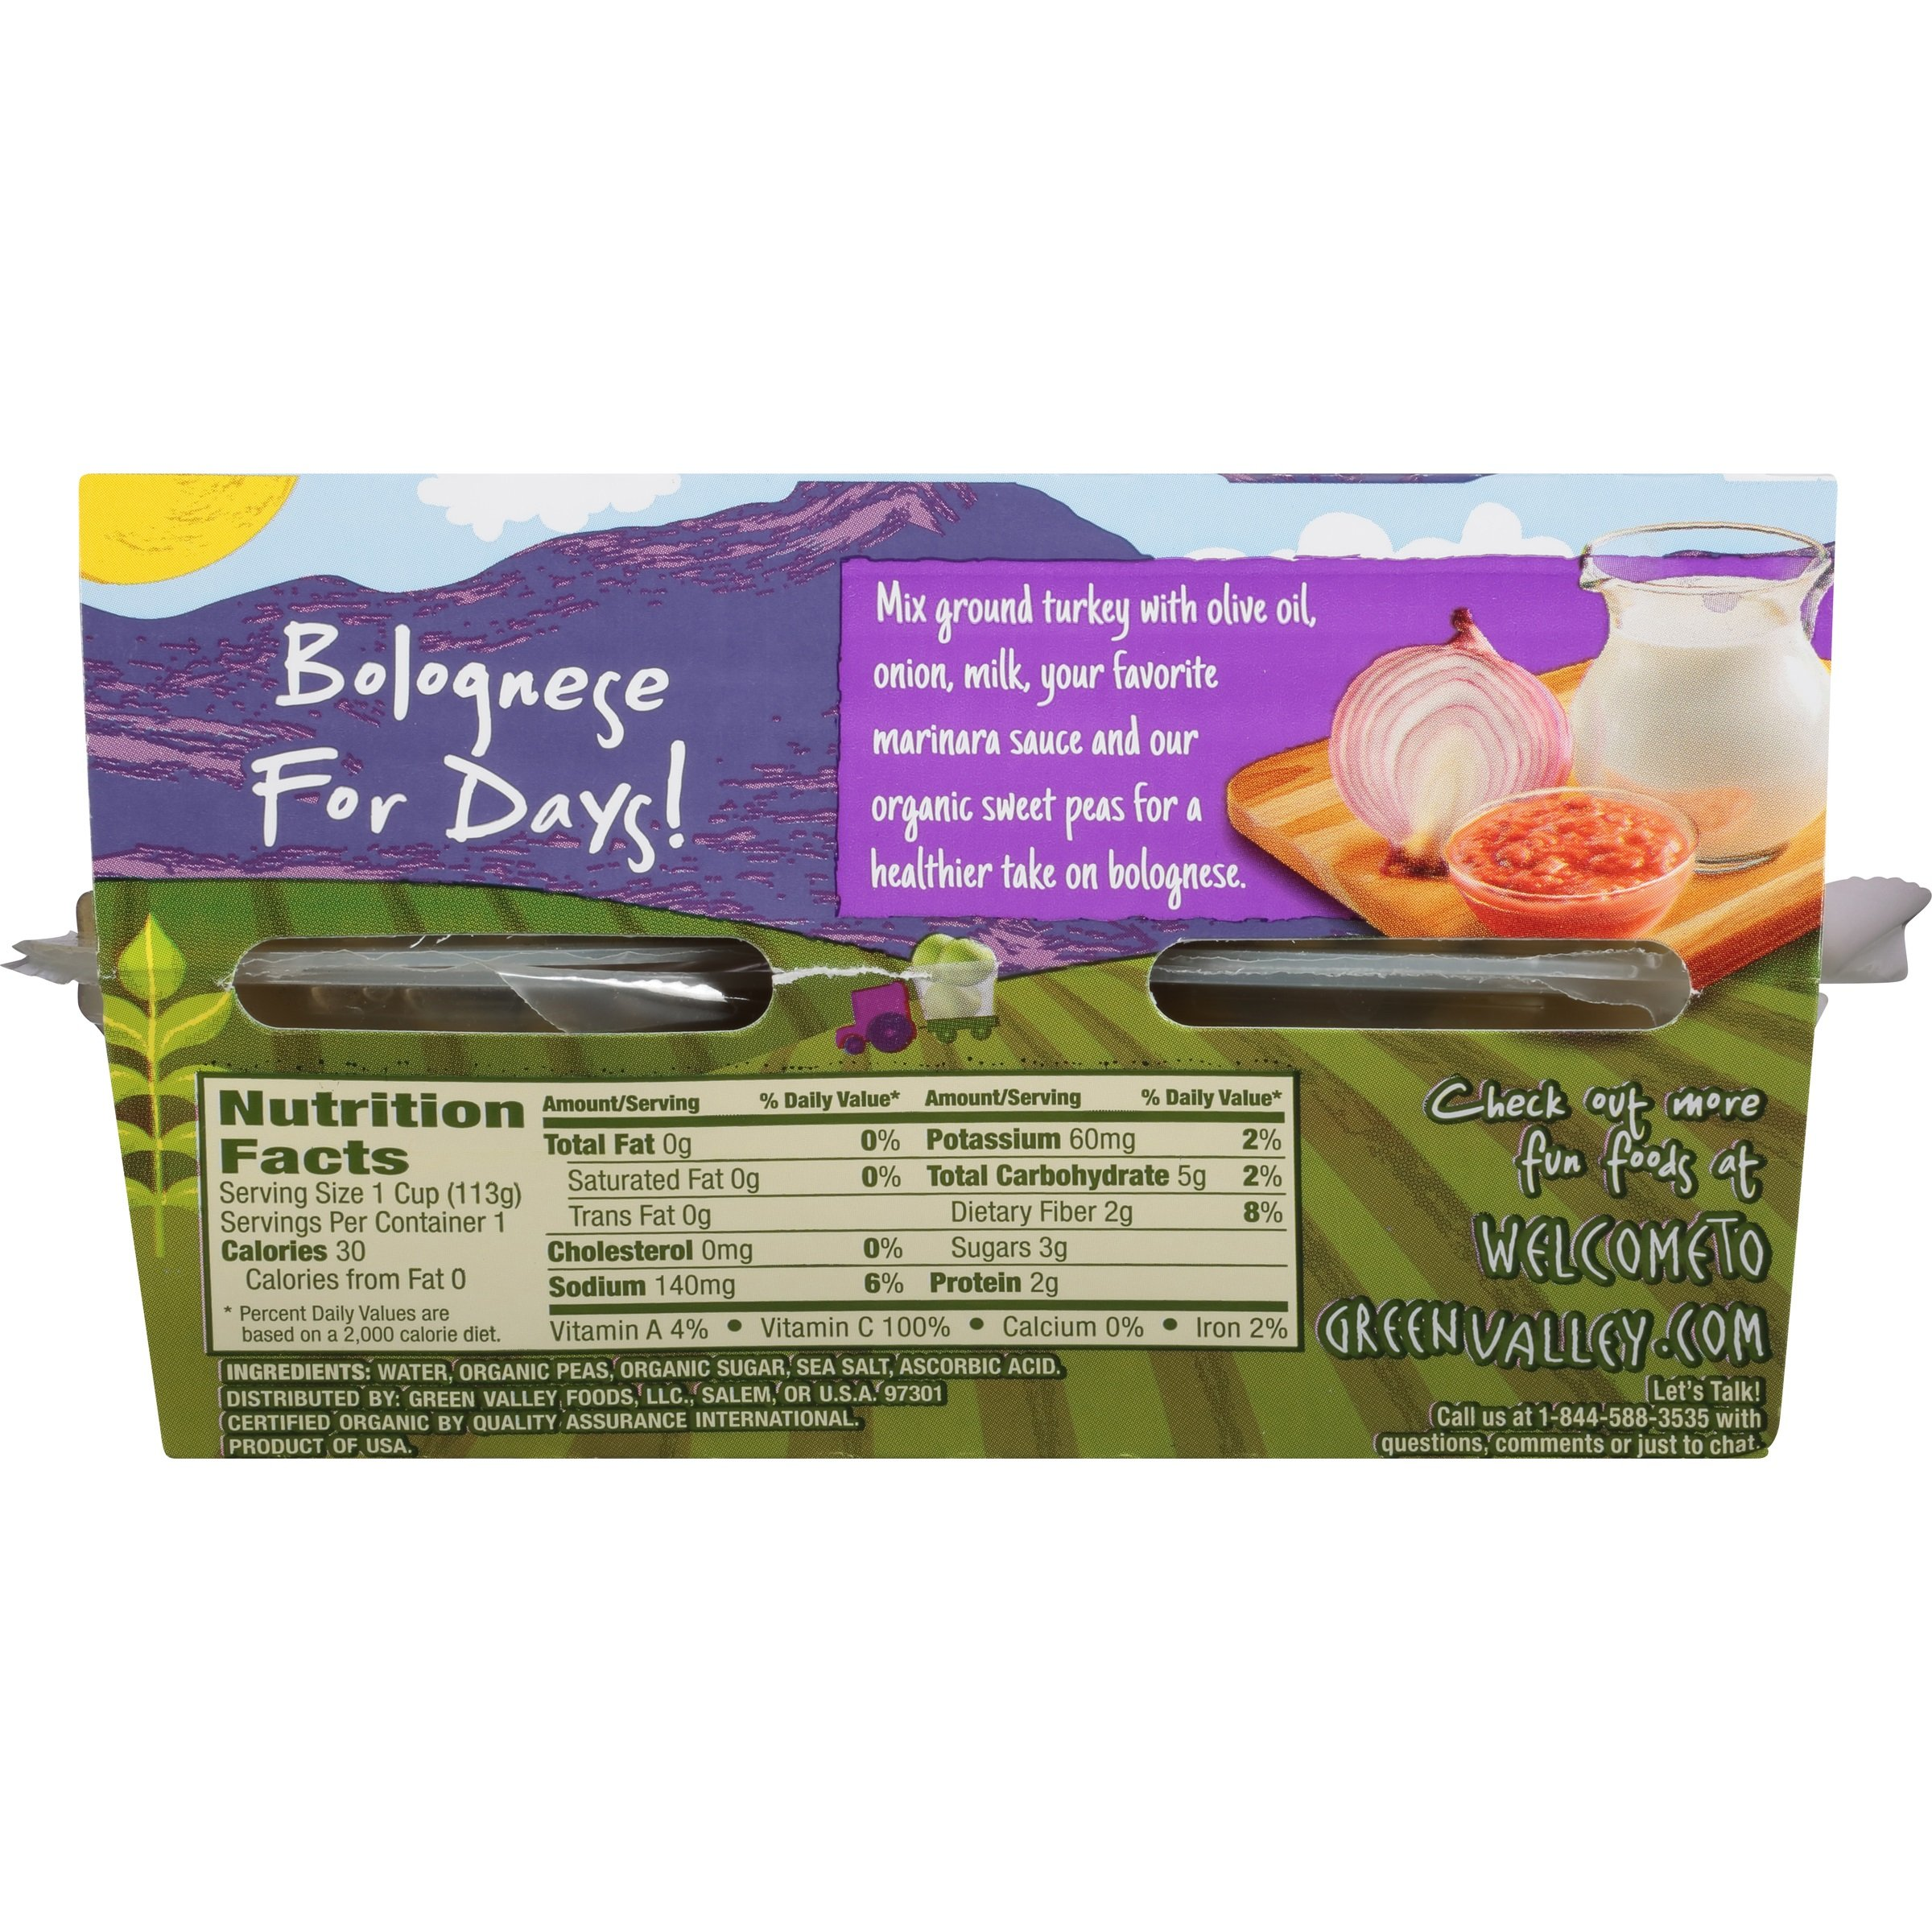 Green Valley Organics Sweet Peas, Single Serve 4 Ounce Cups, Pack of 6